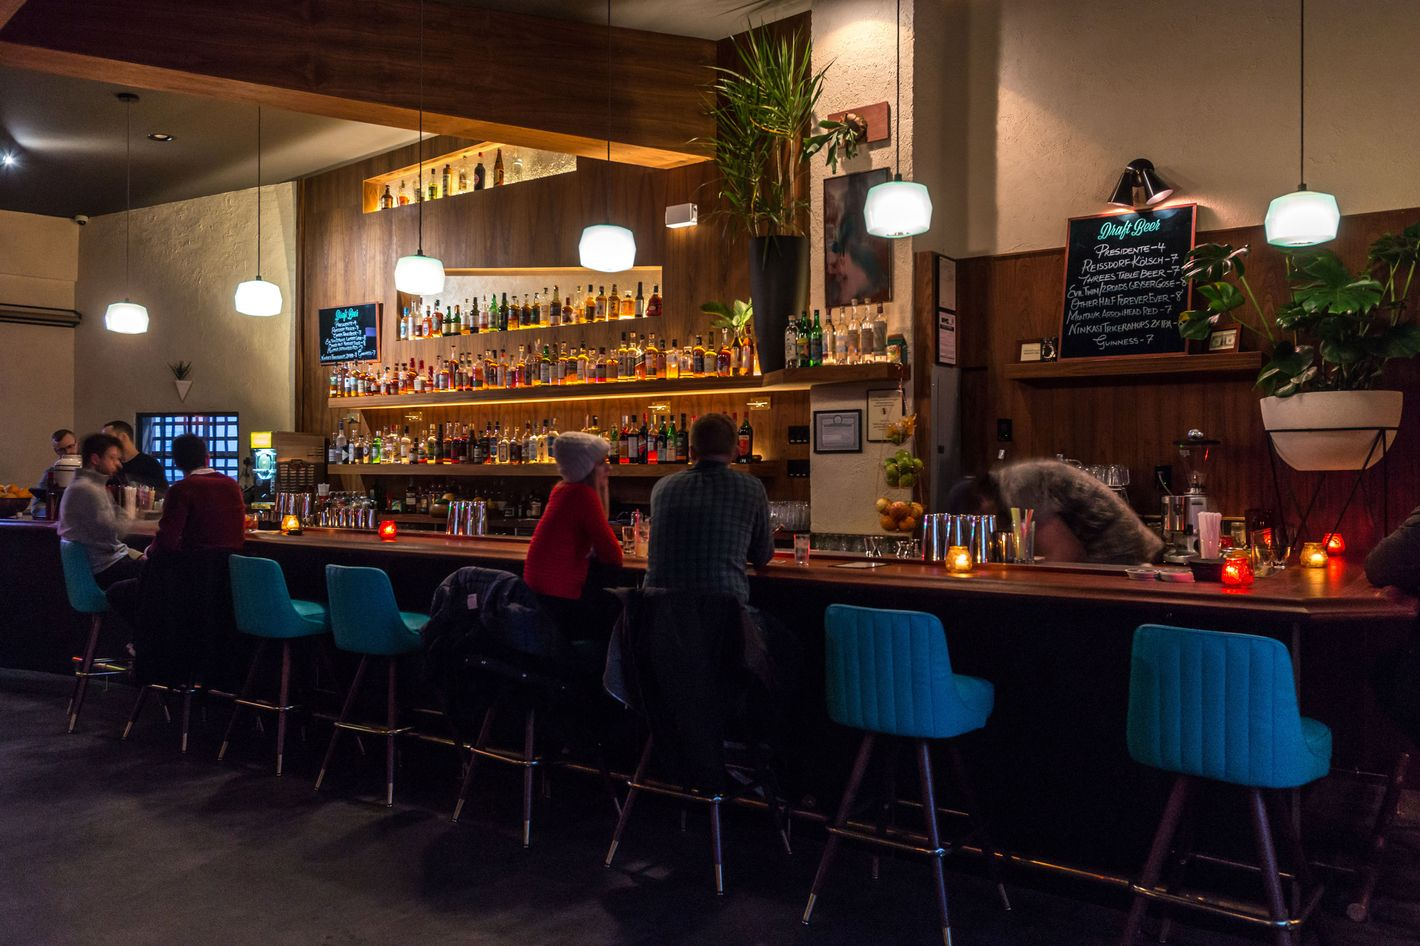 diamond reef from the attaboy team opens in brooklyn